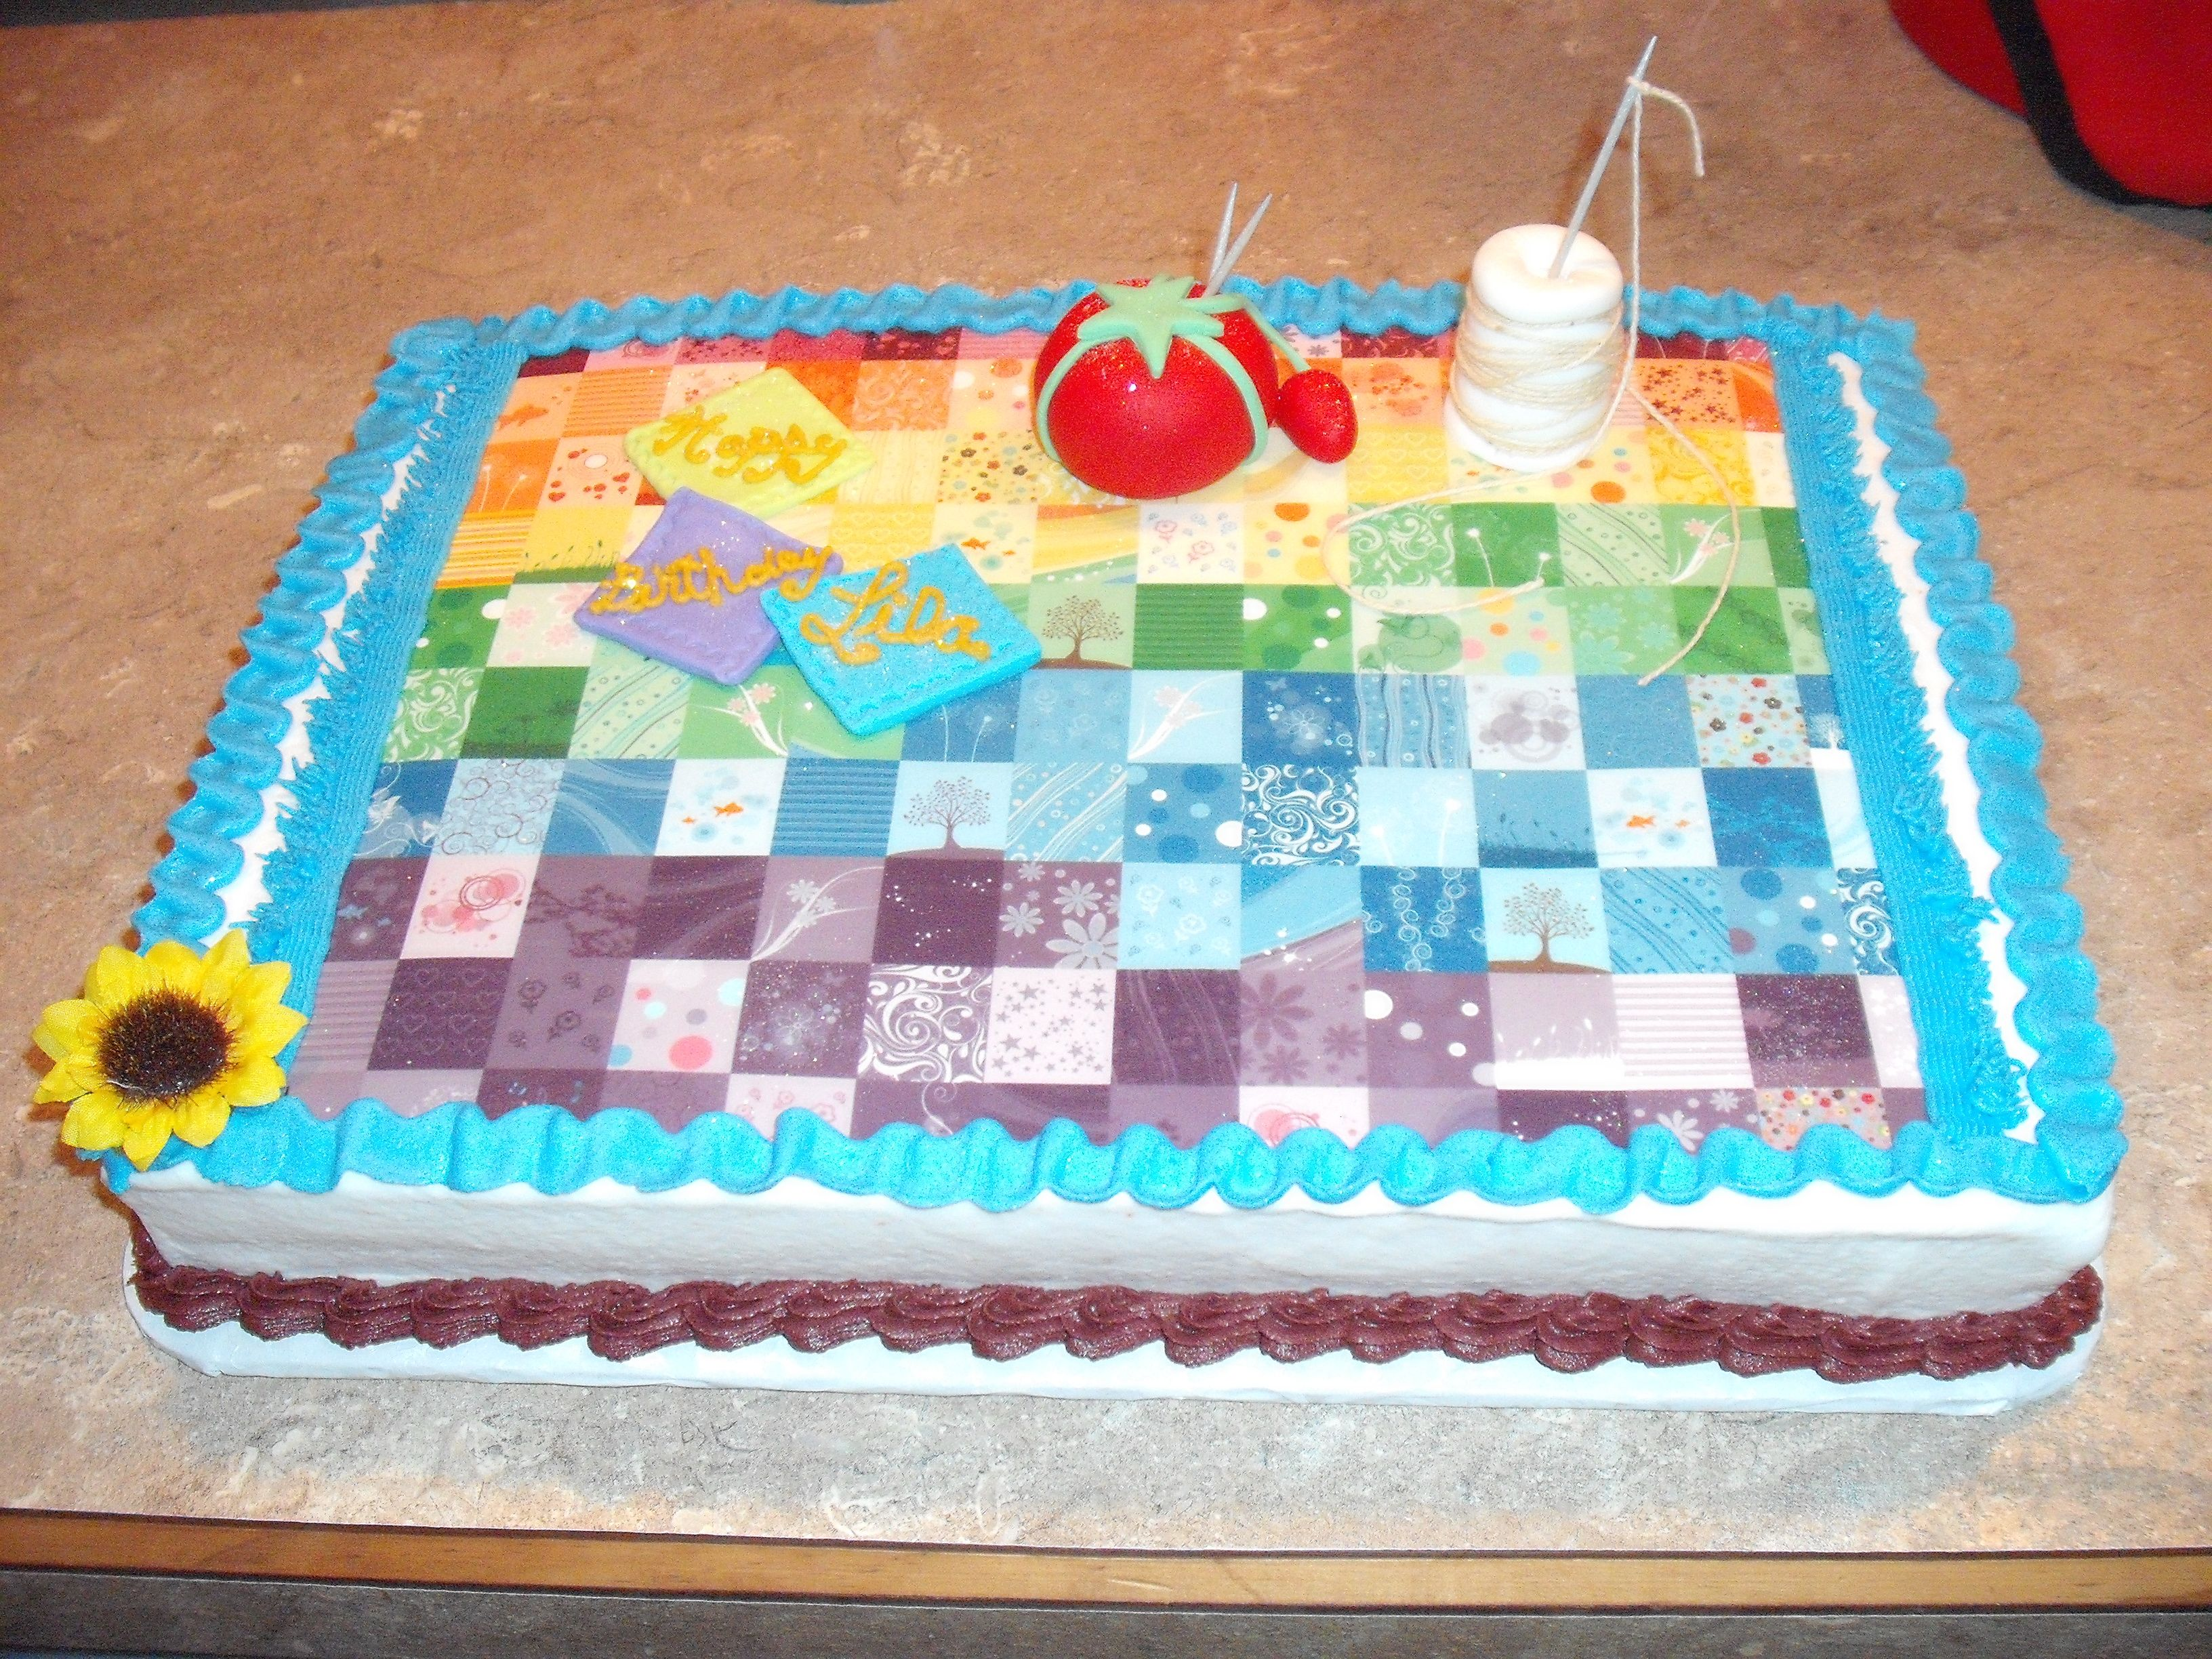 Quilted Cake Design : Quilting themed birthday cake! Nani Quilt Cakes and ...